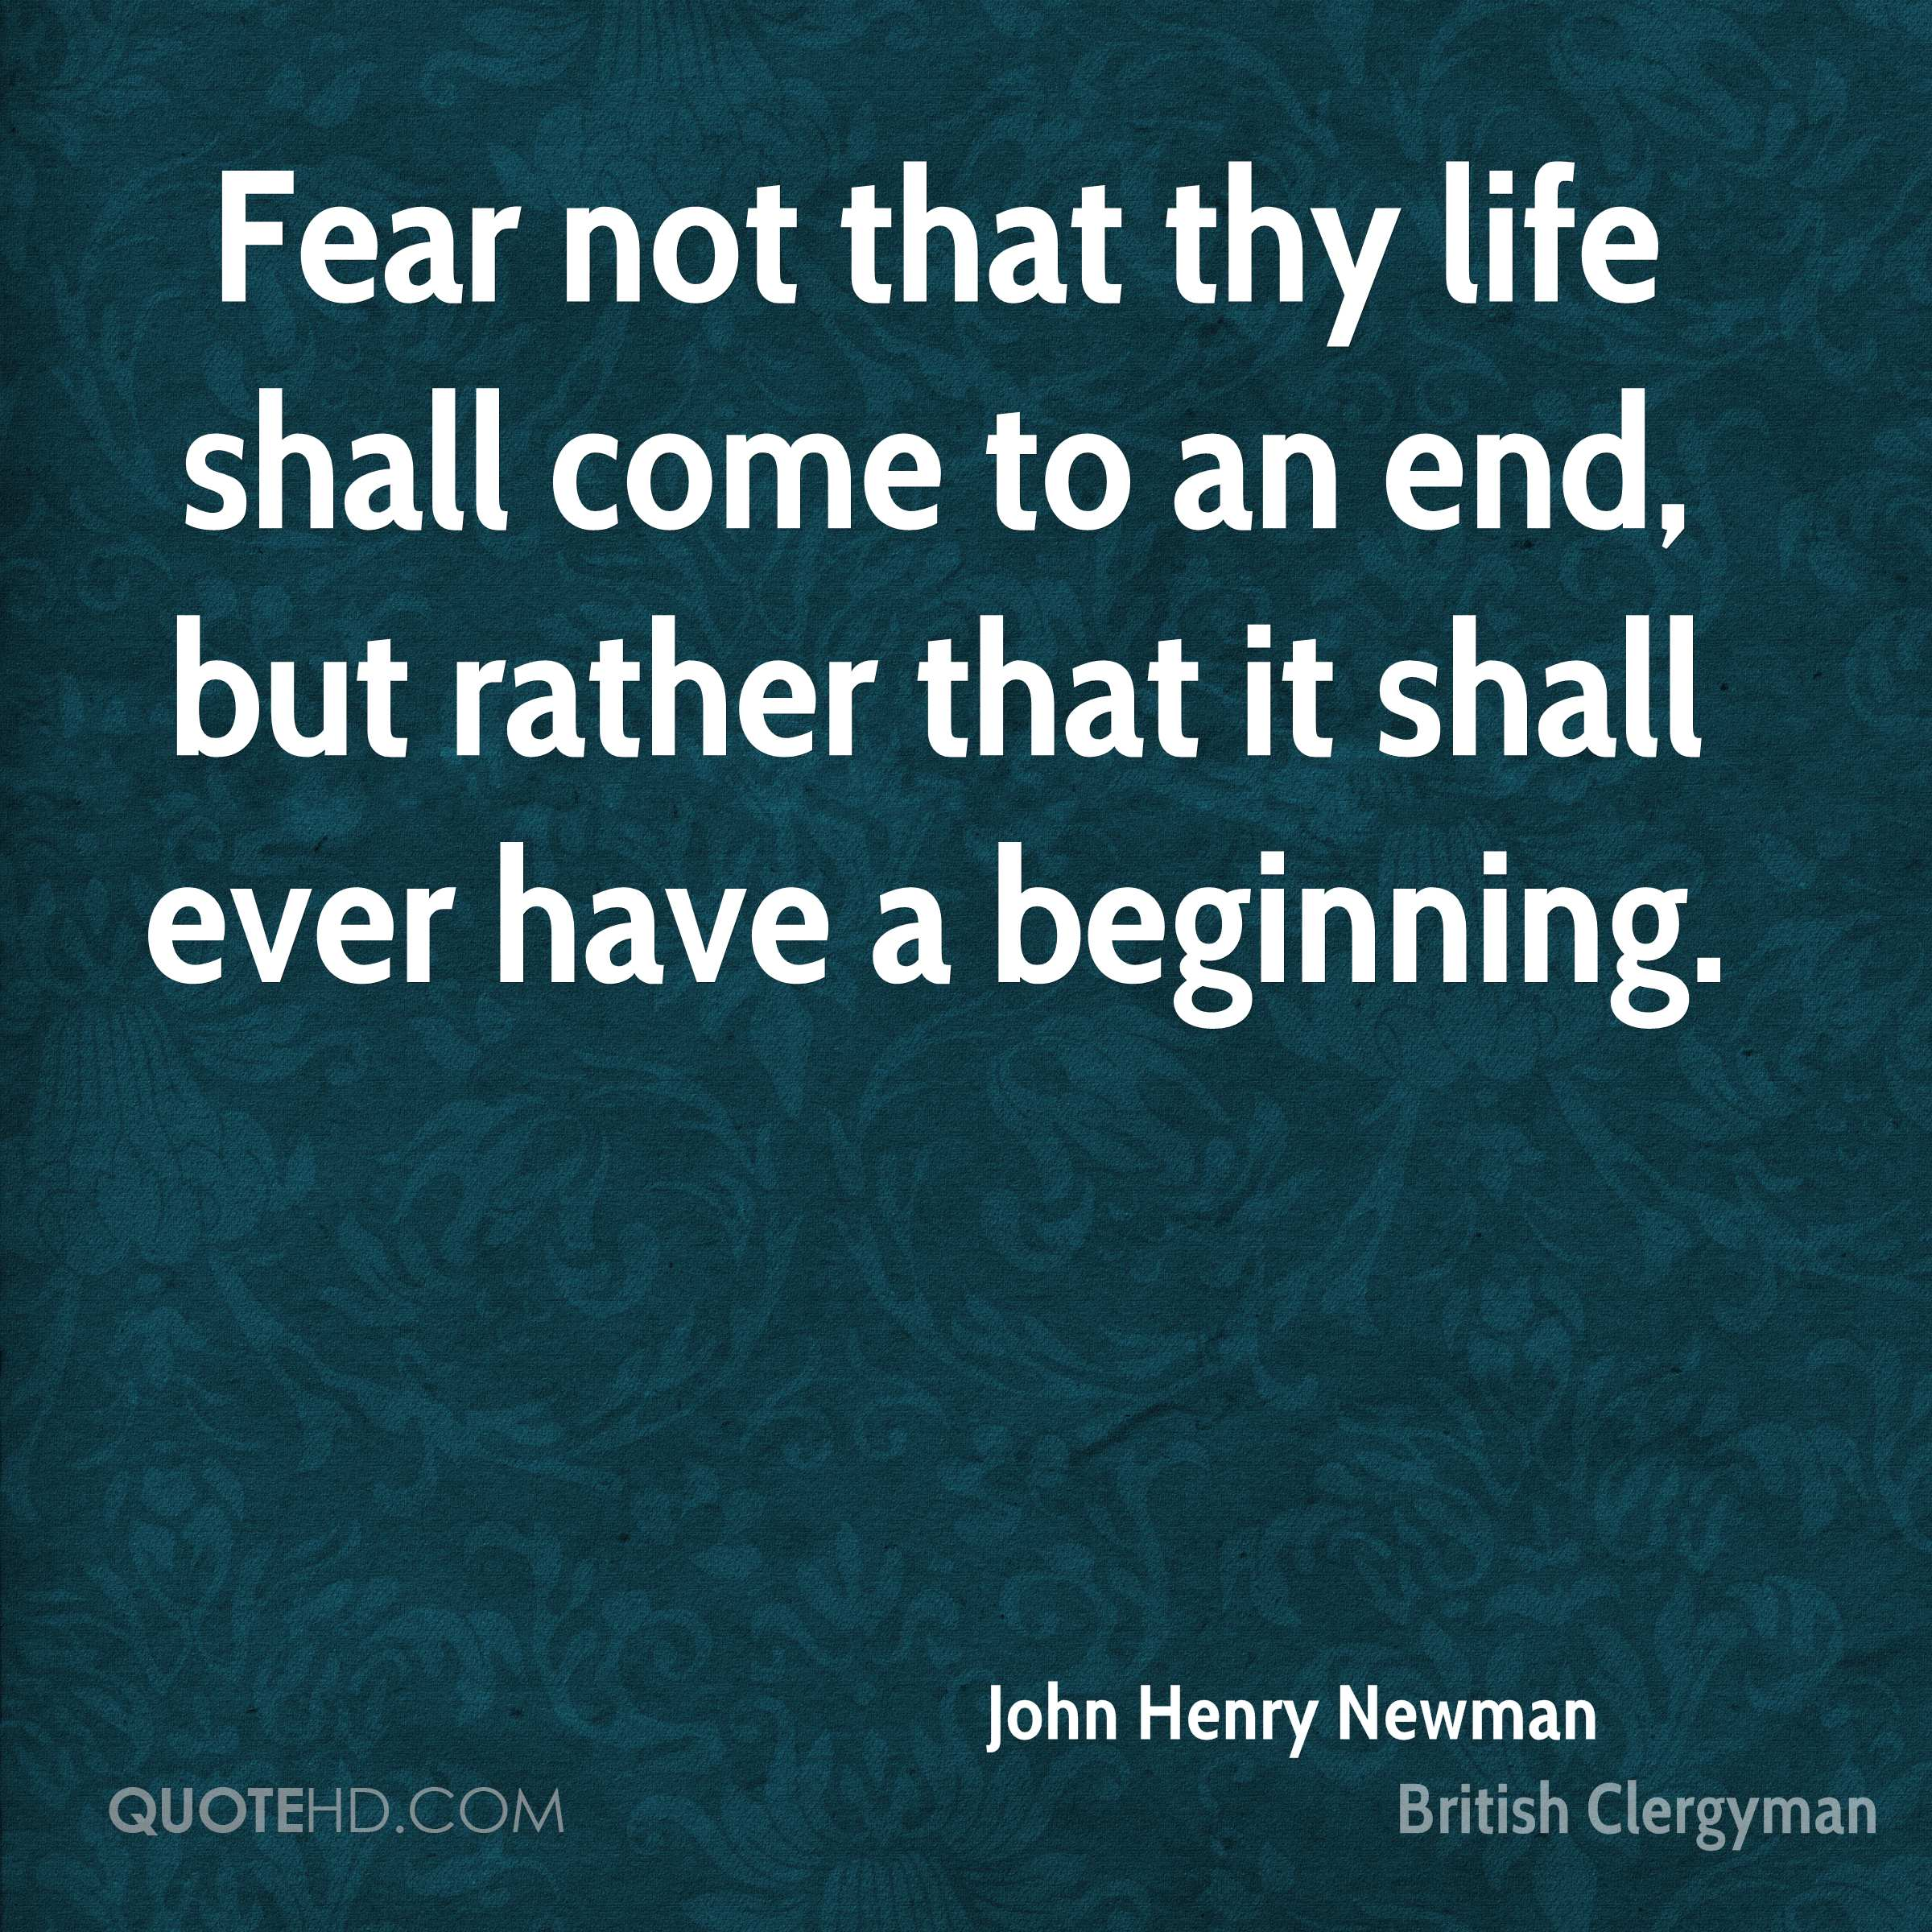 Fear not that thy life shall come to an end, but rather that it shall ever have a beginning.